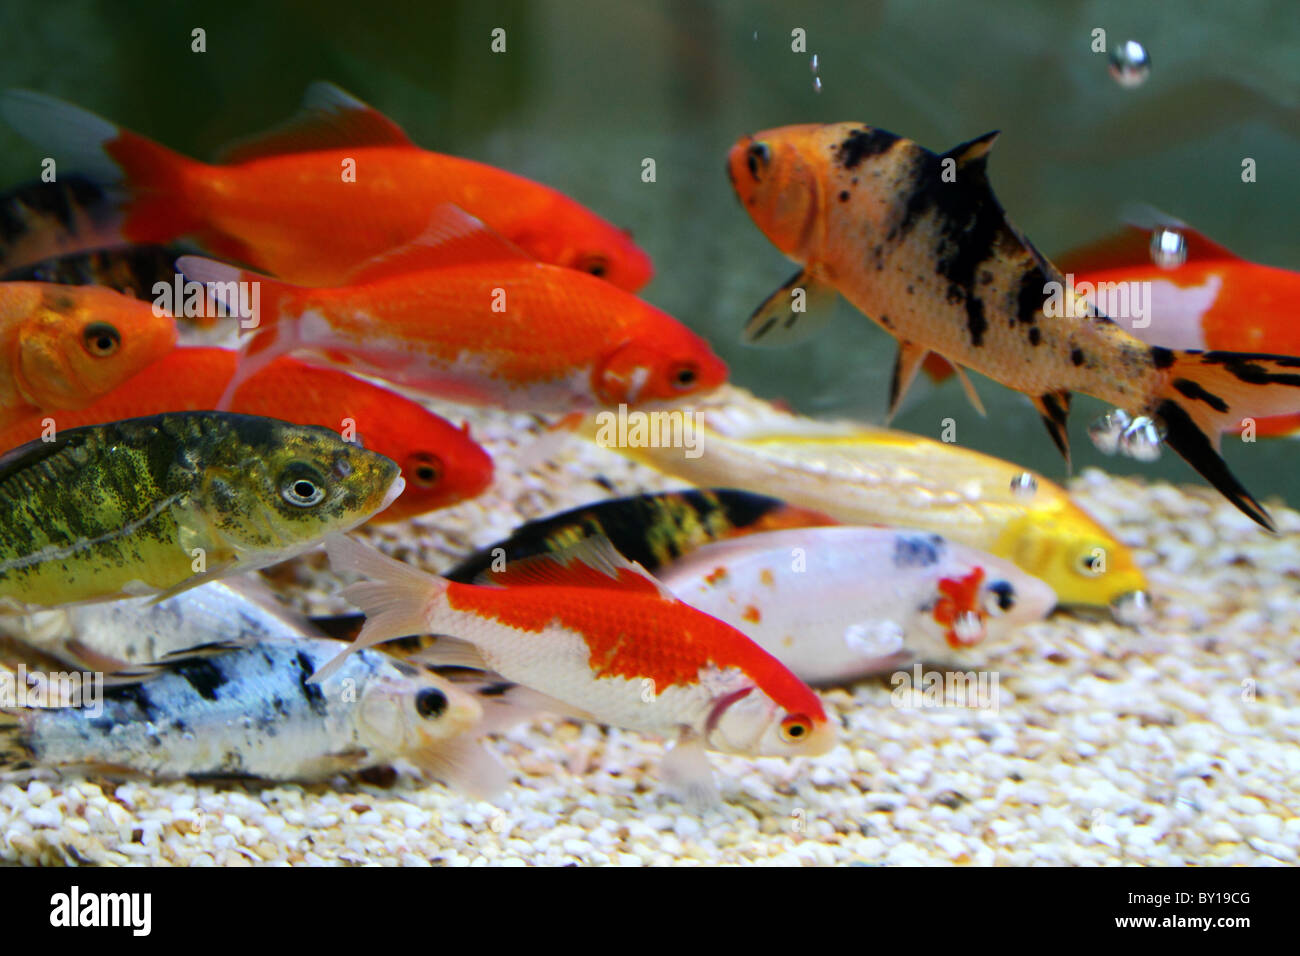 Big colorful Koi carp in a aquarium Stock Photo: 33835440 - Alamy